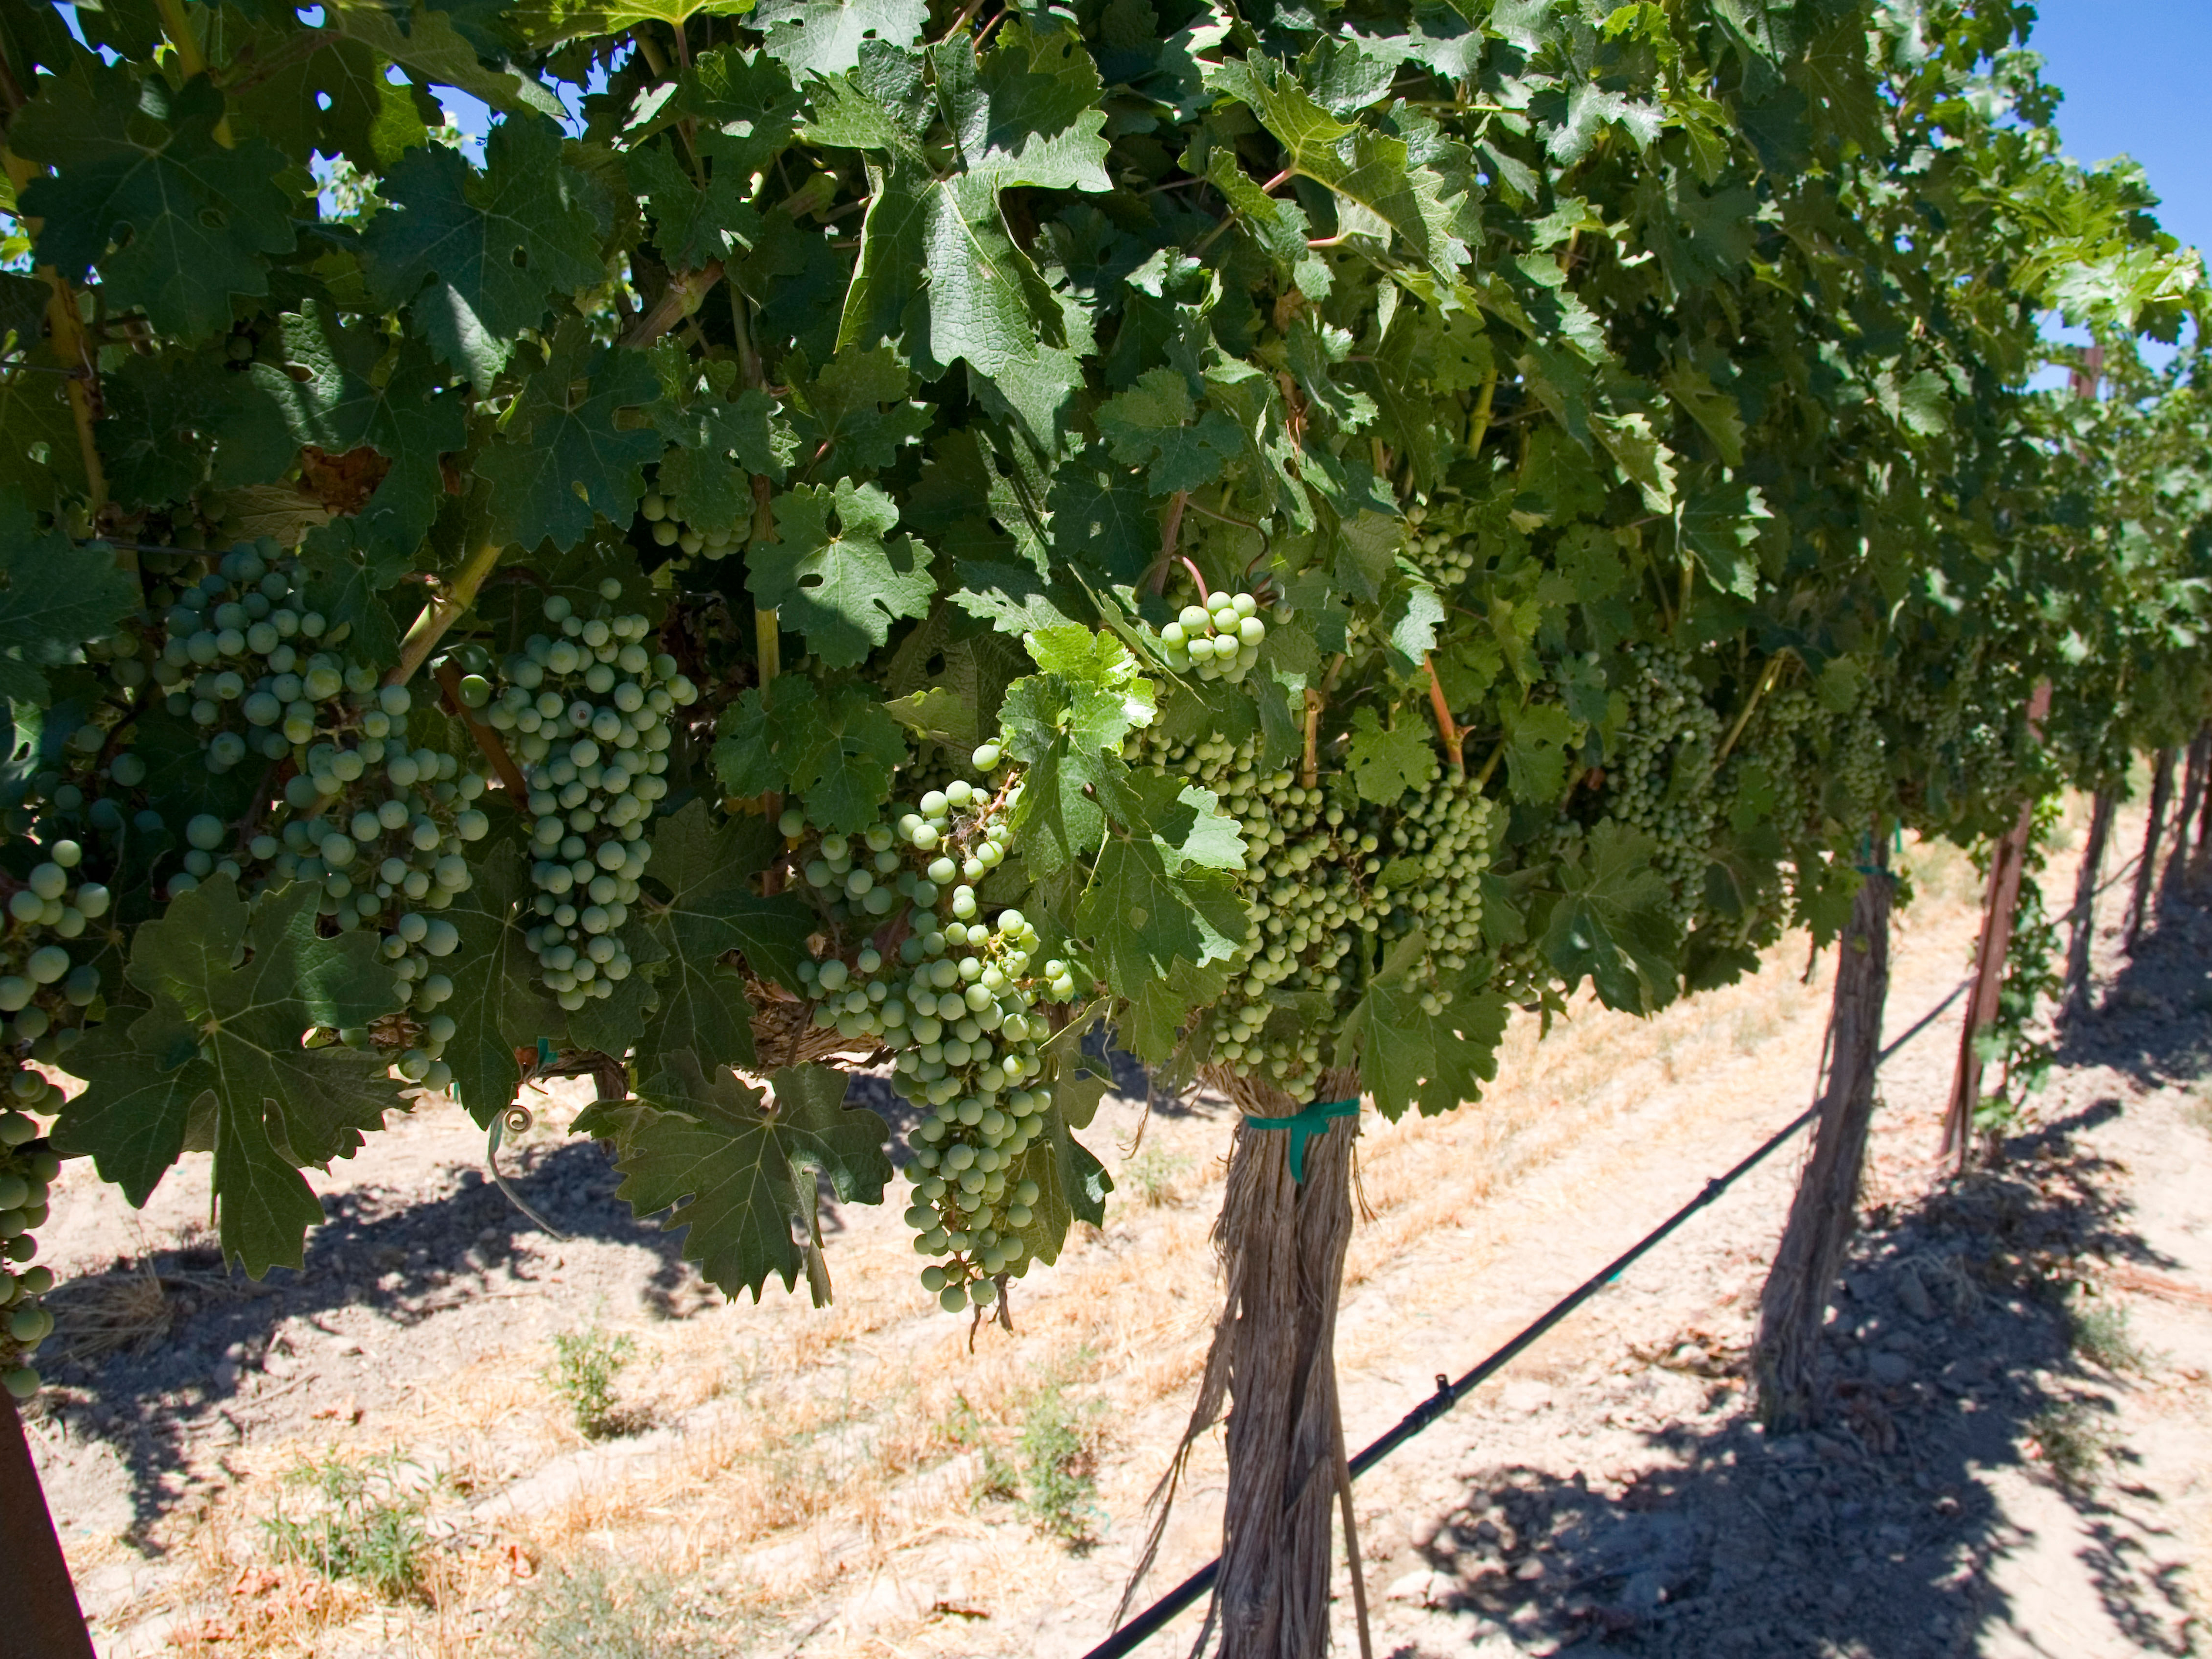 Grapes on the vine in Snake River Valley